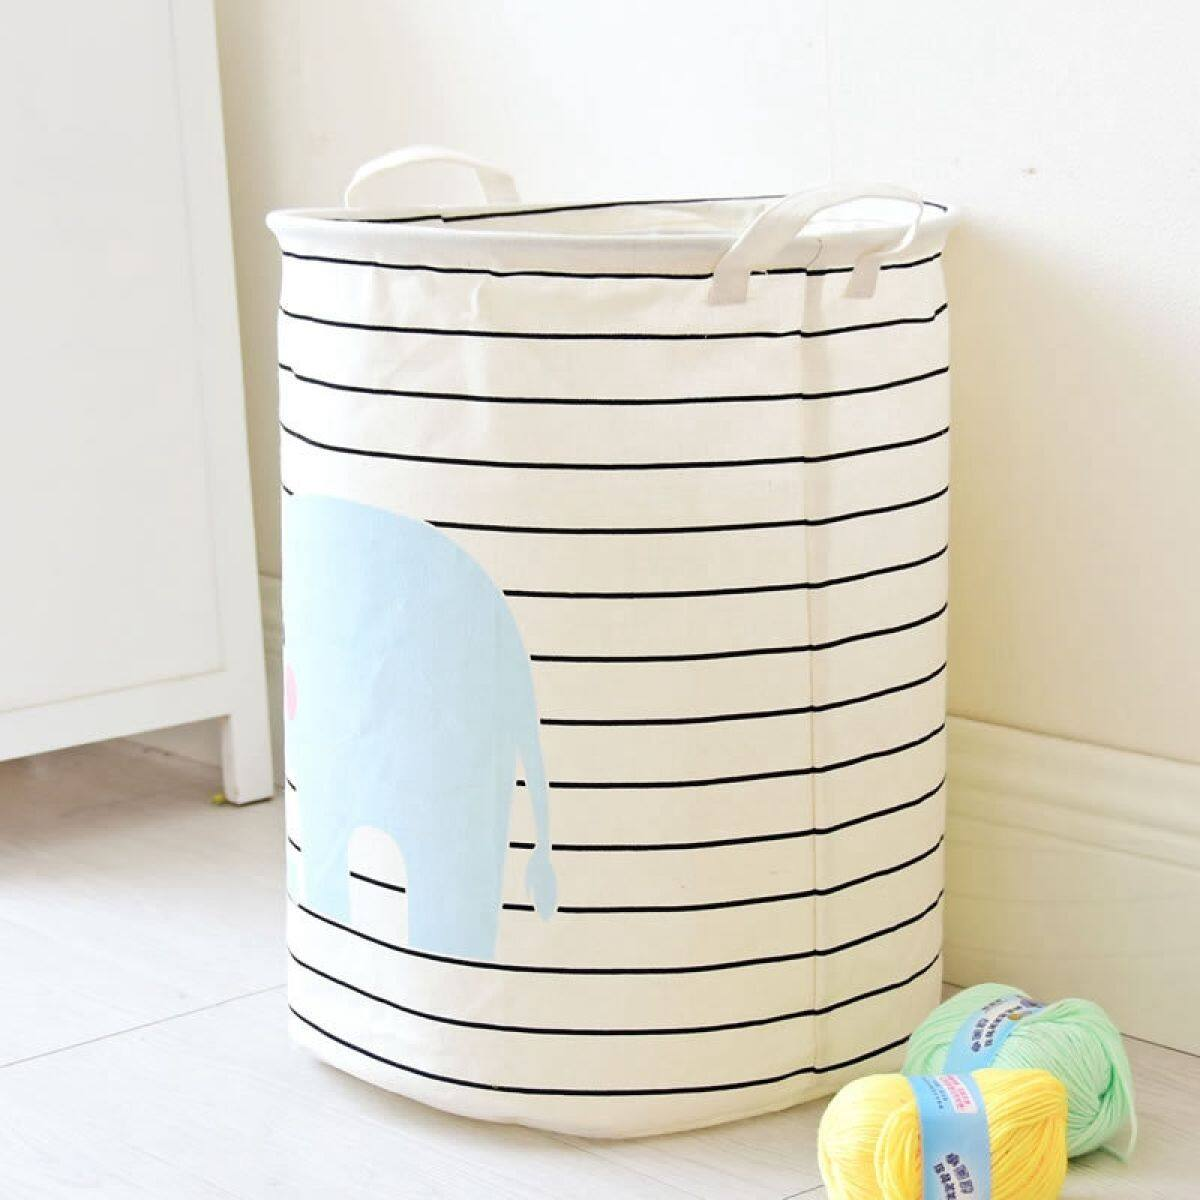 Fabric Laundry Basket Waterproof Basket For Toys Baby Dirty Clothes Baskets Laundry Hamper Picnic Basket Lazada